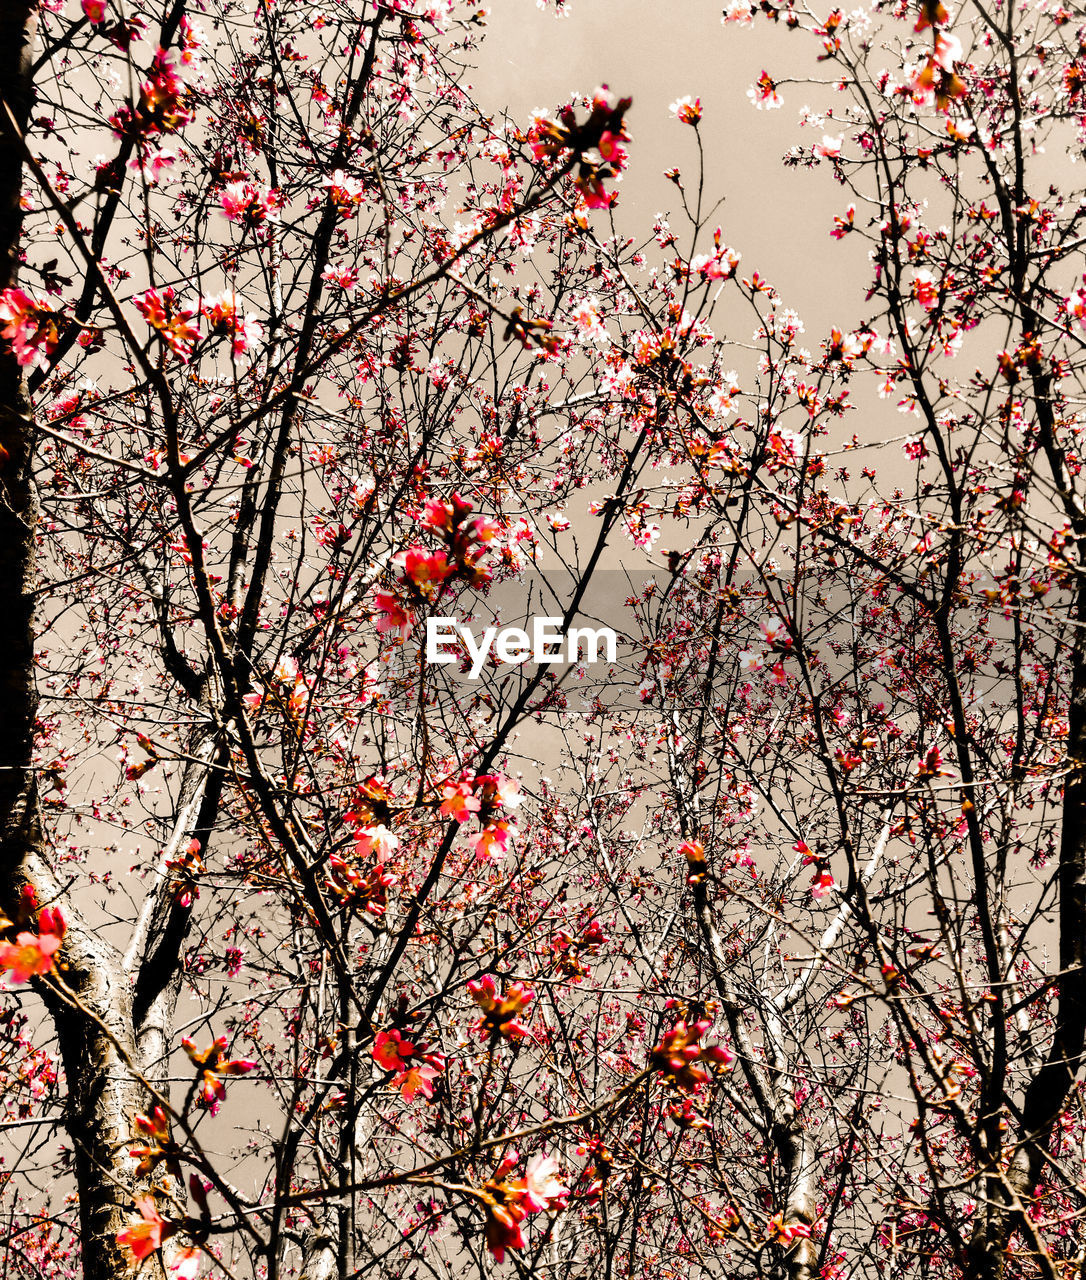 flower, branch, tree, blossom, beauty in nature, springtime, cherry blossom, growth, nature, cherry tree, low angle view, freshness, fragility, botany, twig, plum blossom, orchard, outdoors, no people, pink color, apple blossom, day, petal, tranquility, backgrounds, scenics, close-up, sky, flower head